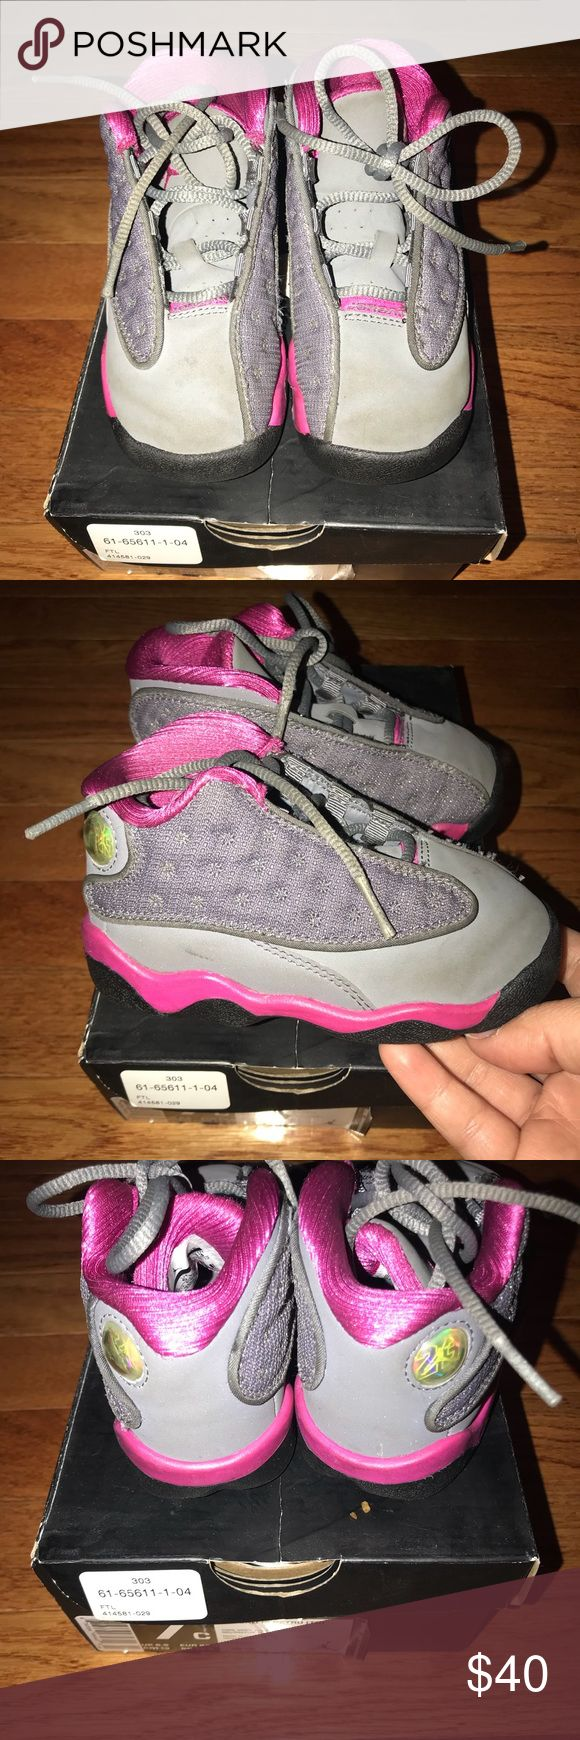 Jordan retro 13 Jordan retro 13 in good condition size 7c. Comes with original box. In need of a good cleaning. Color is cool grey/fusion pink. Jordan Shoes Sneakers